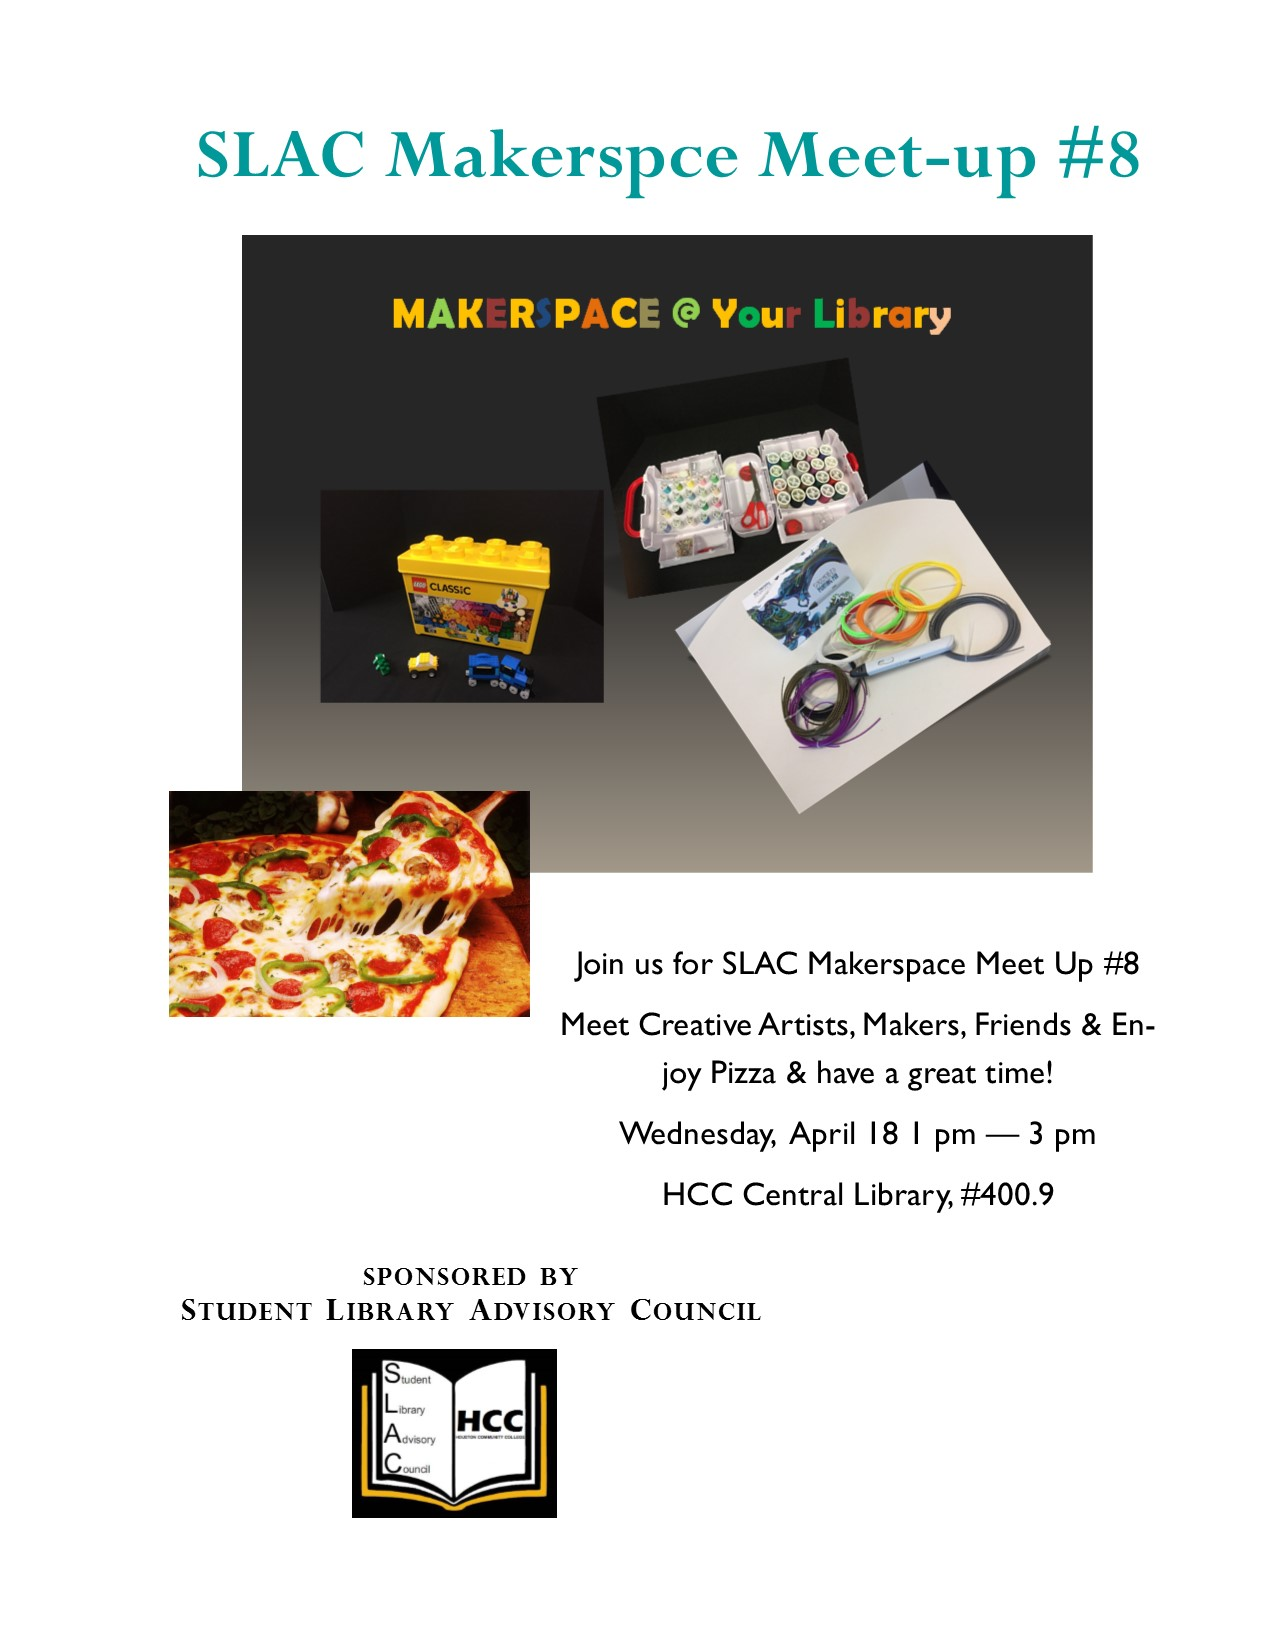 SLAC Makerspace Pop-up Series #8